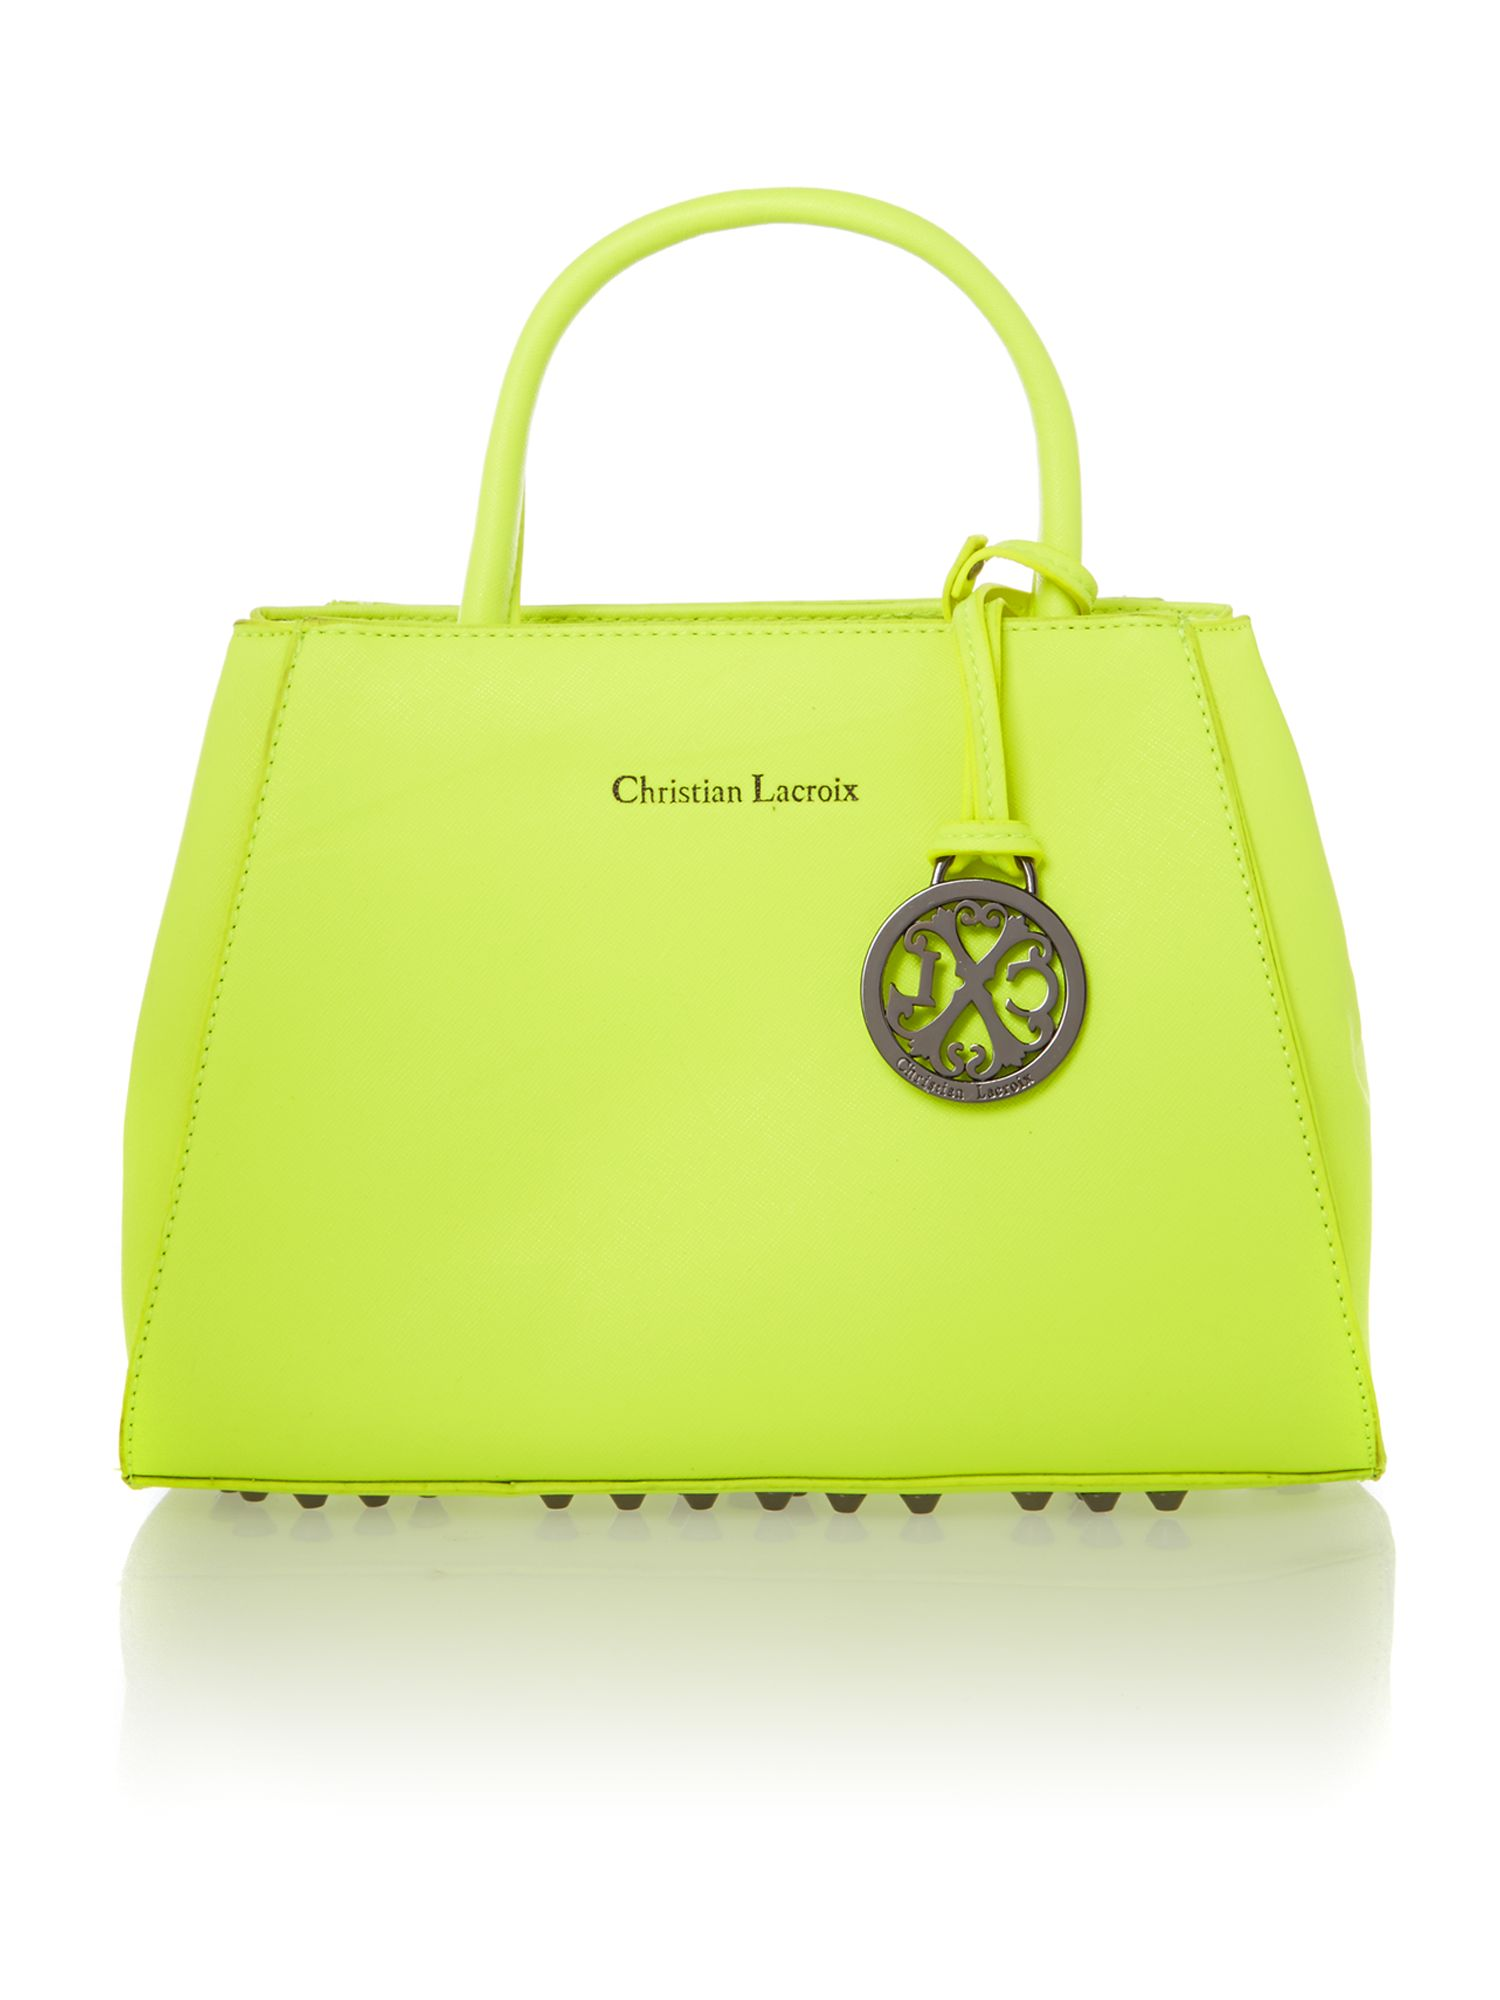 Eternity yellow cross body tote bag